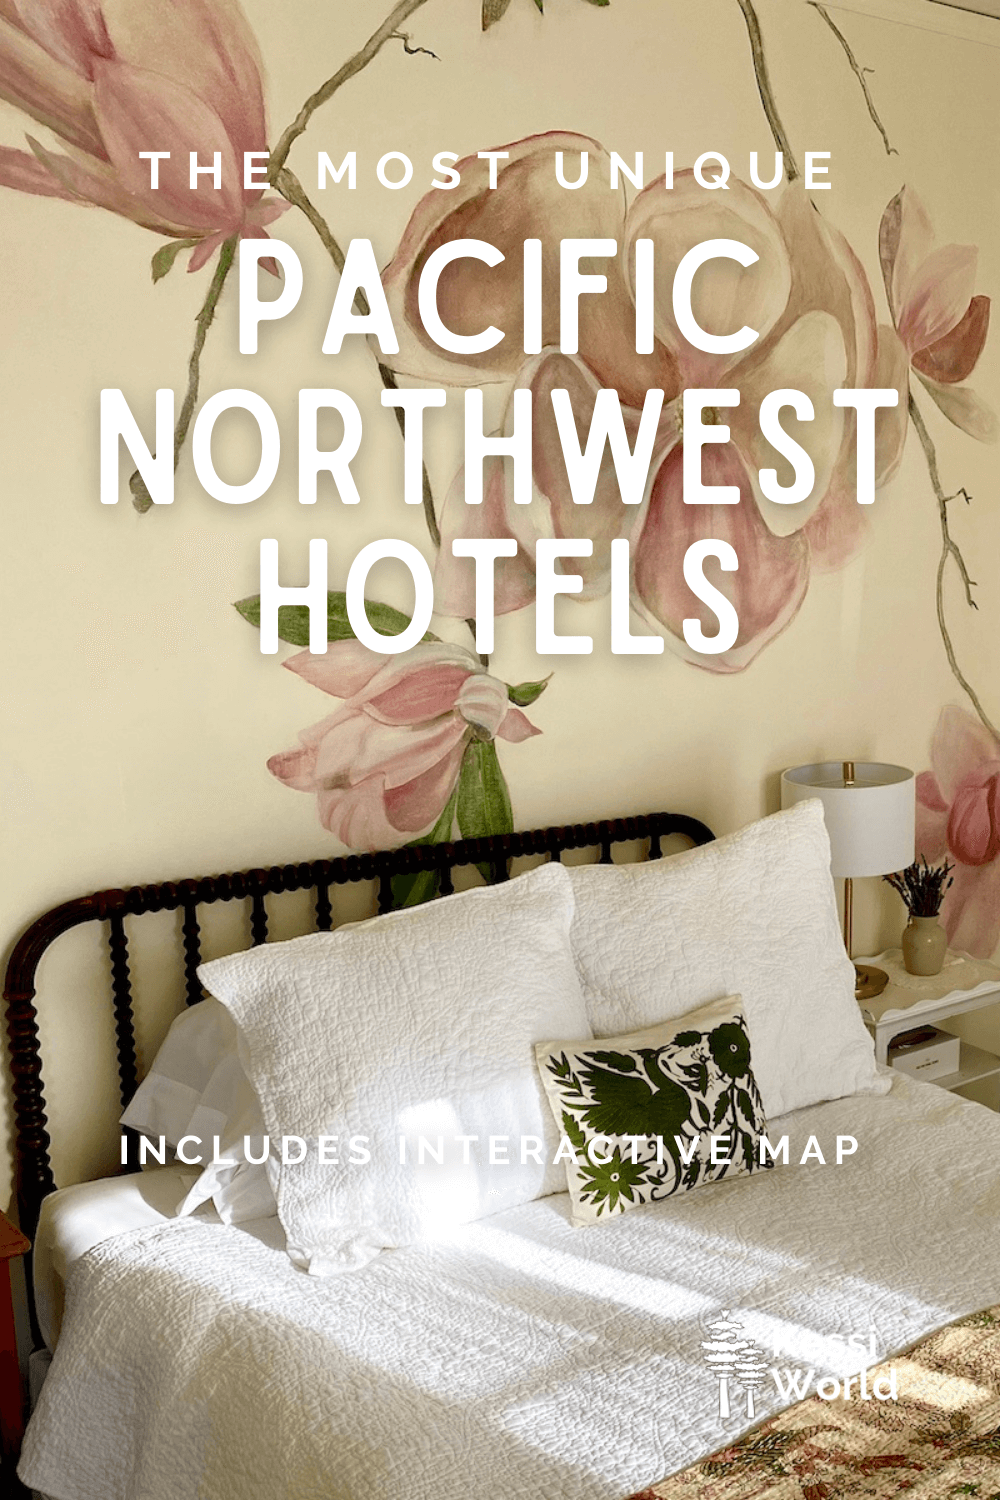 This Pinterest pin shows a brightly colored hotel room with beautiful artwork on the wall painted pink flowers.